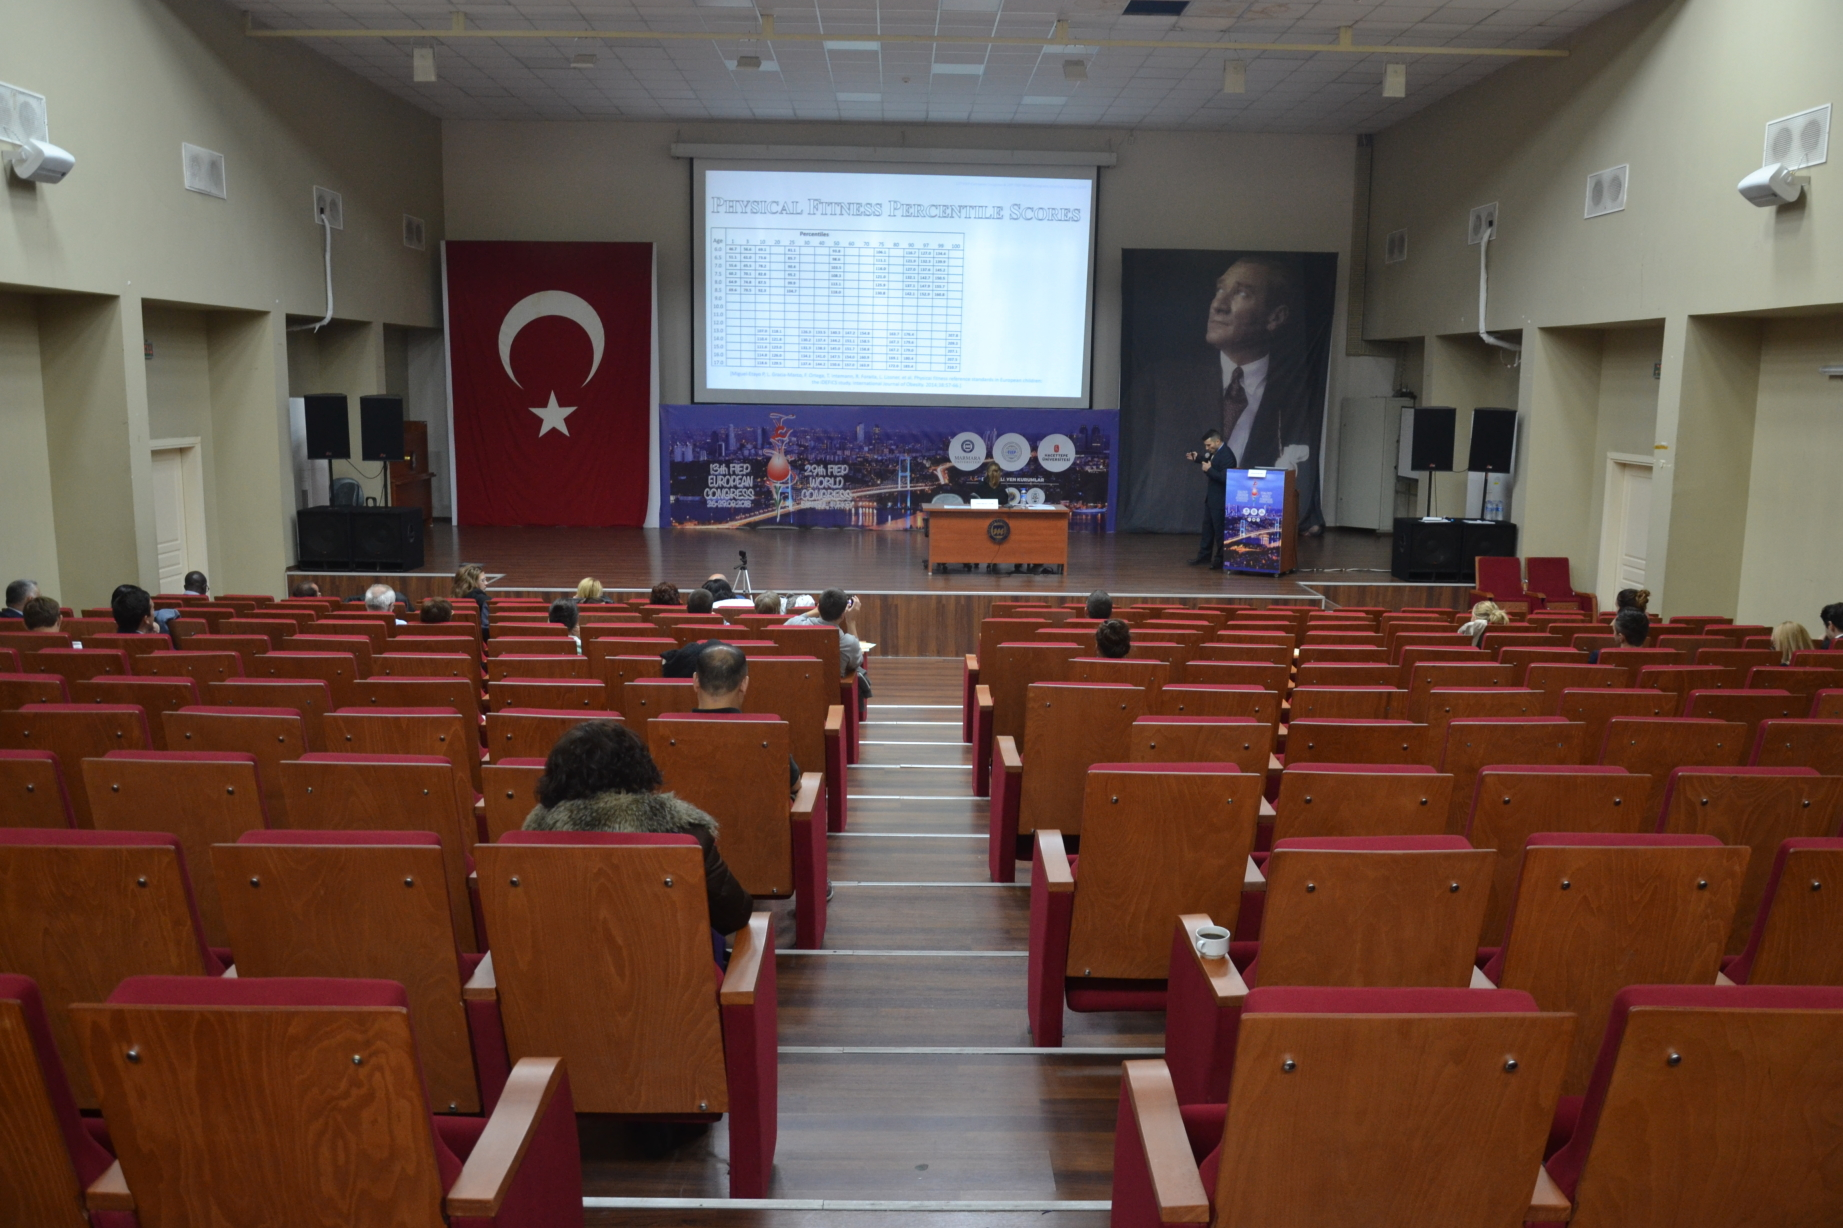 Dr Stefan Kolimechkov speaks at Marmara University in Istanbul